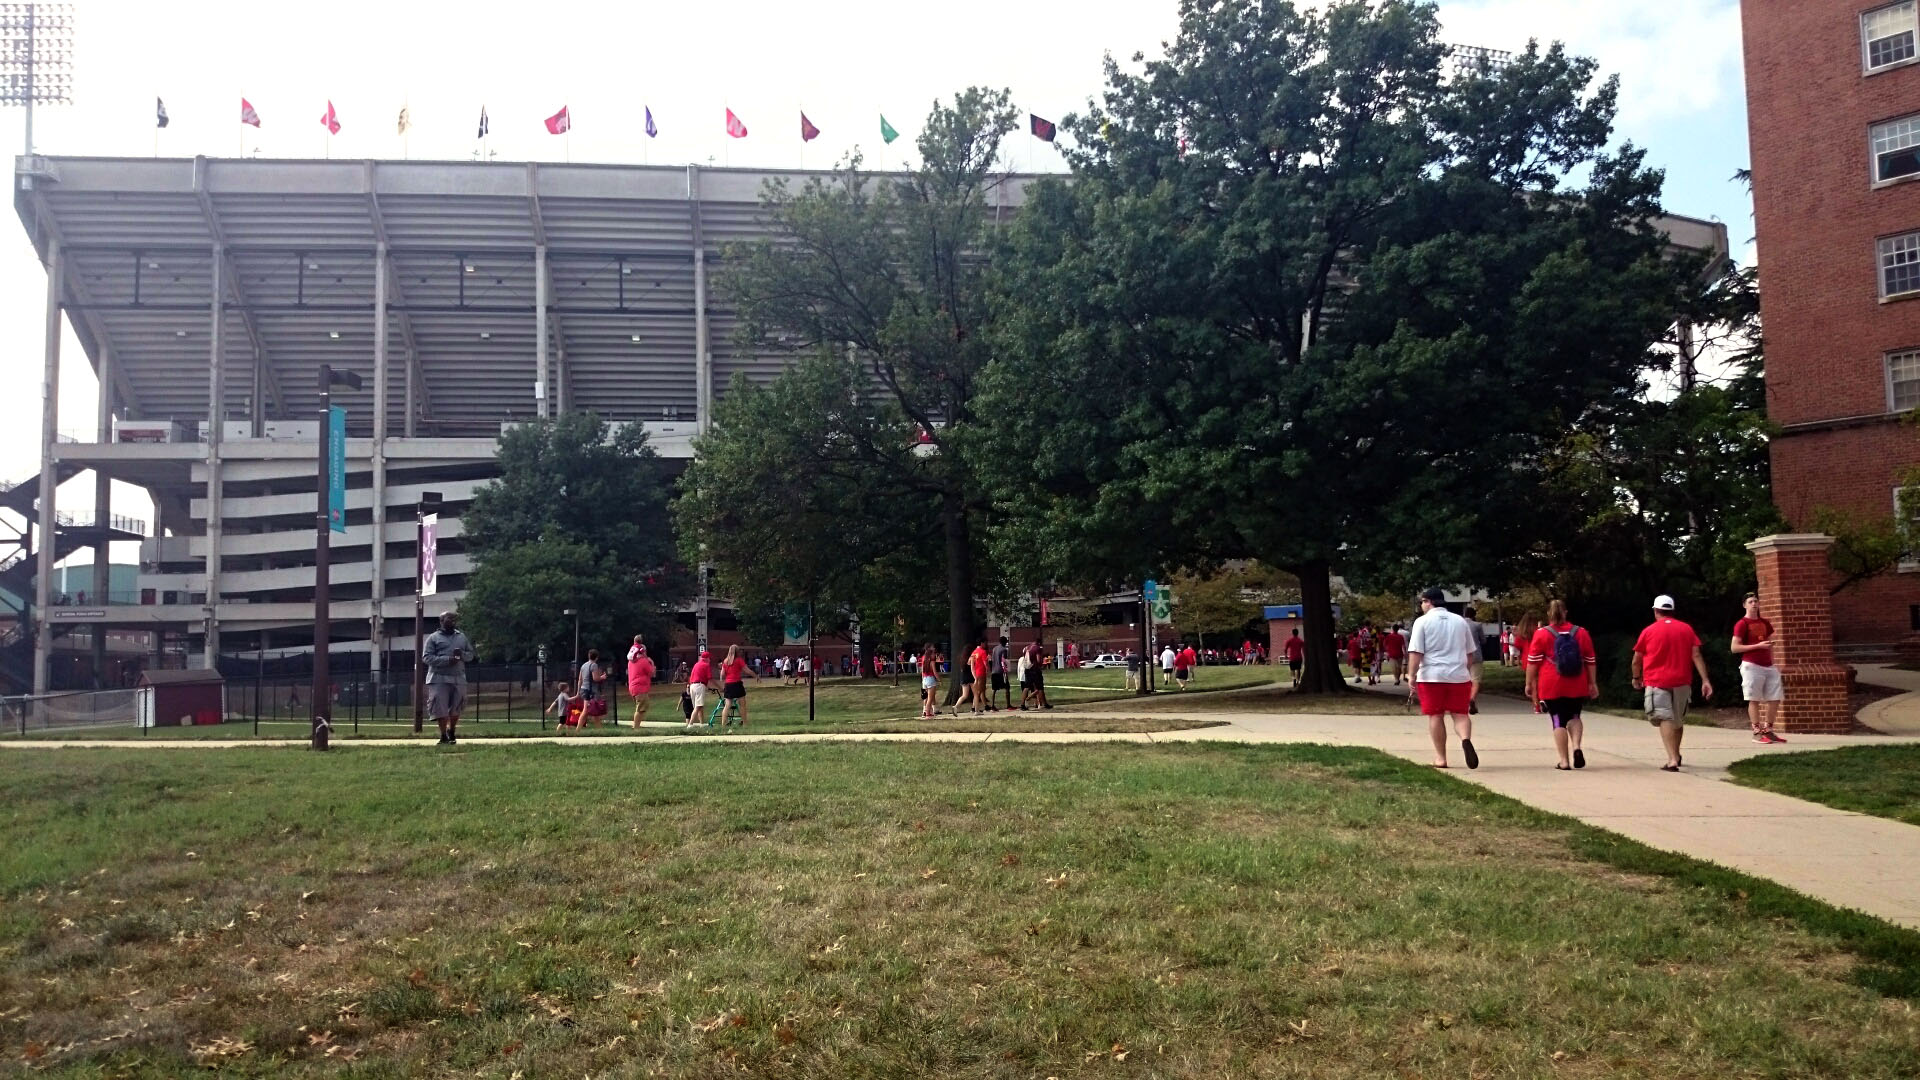 U.Md. president recommends renaming Byrd Stadium